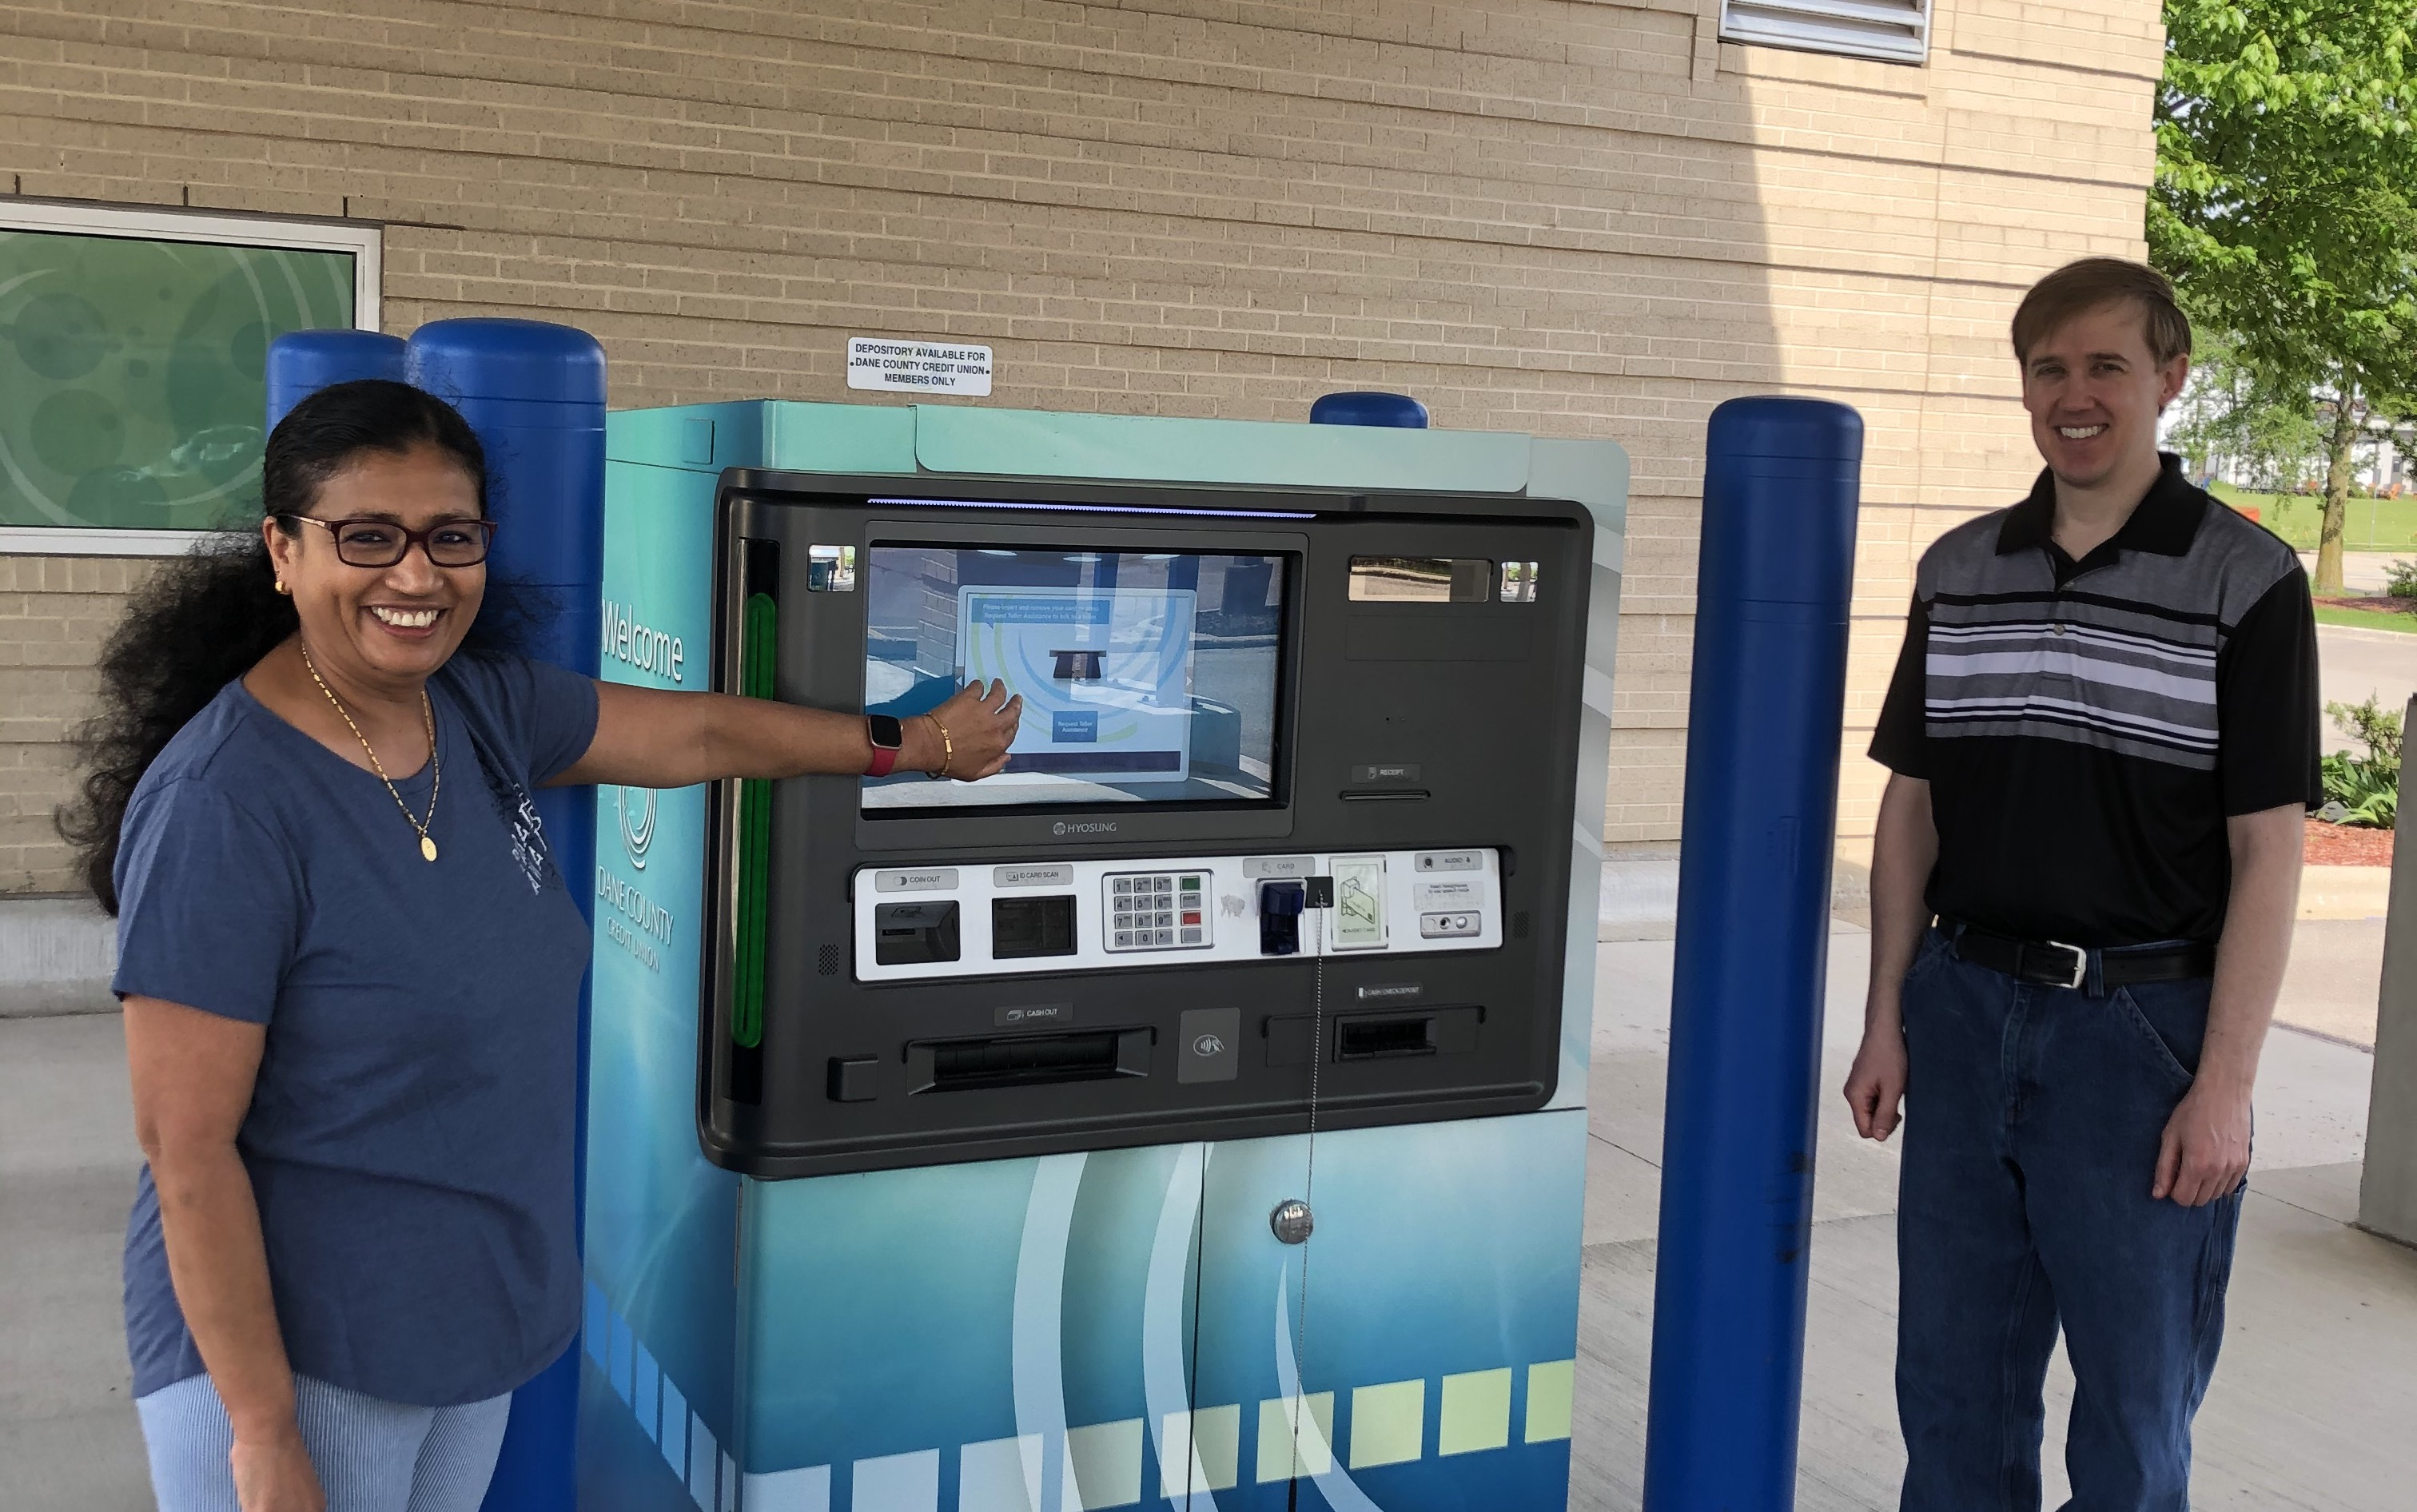 DCCU staff with Interactive Teller Machines